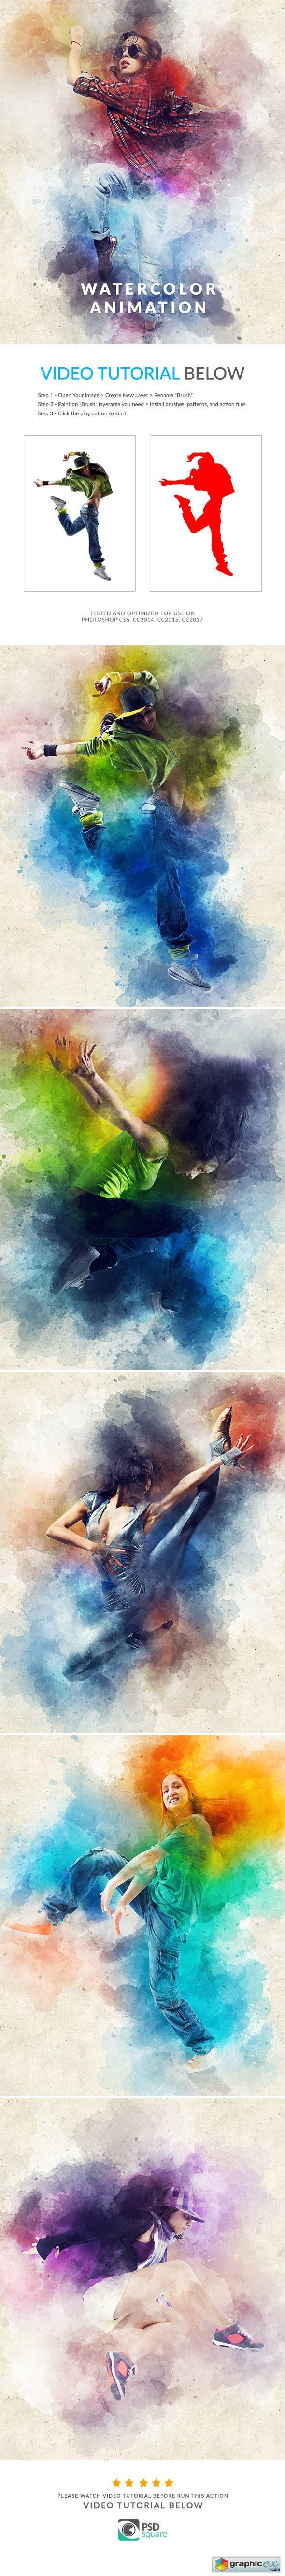 Graphicriver Watercolor Animation Photoshop Action